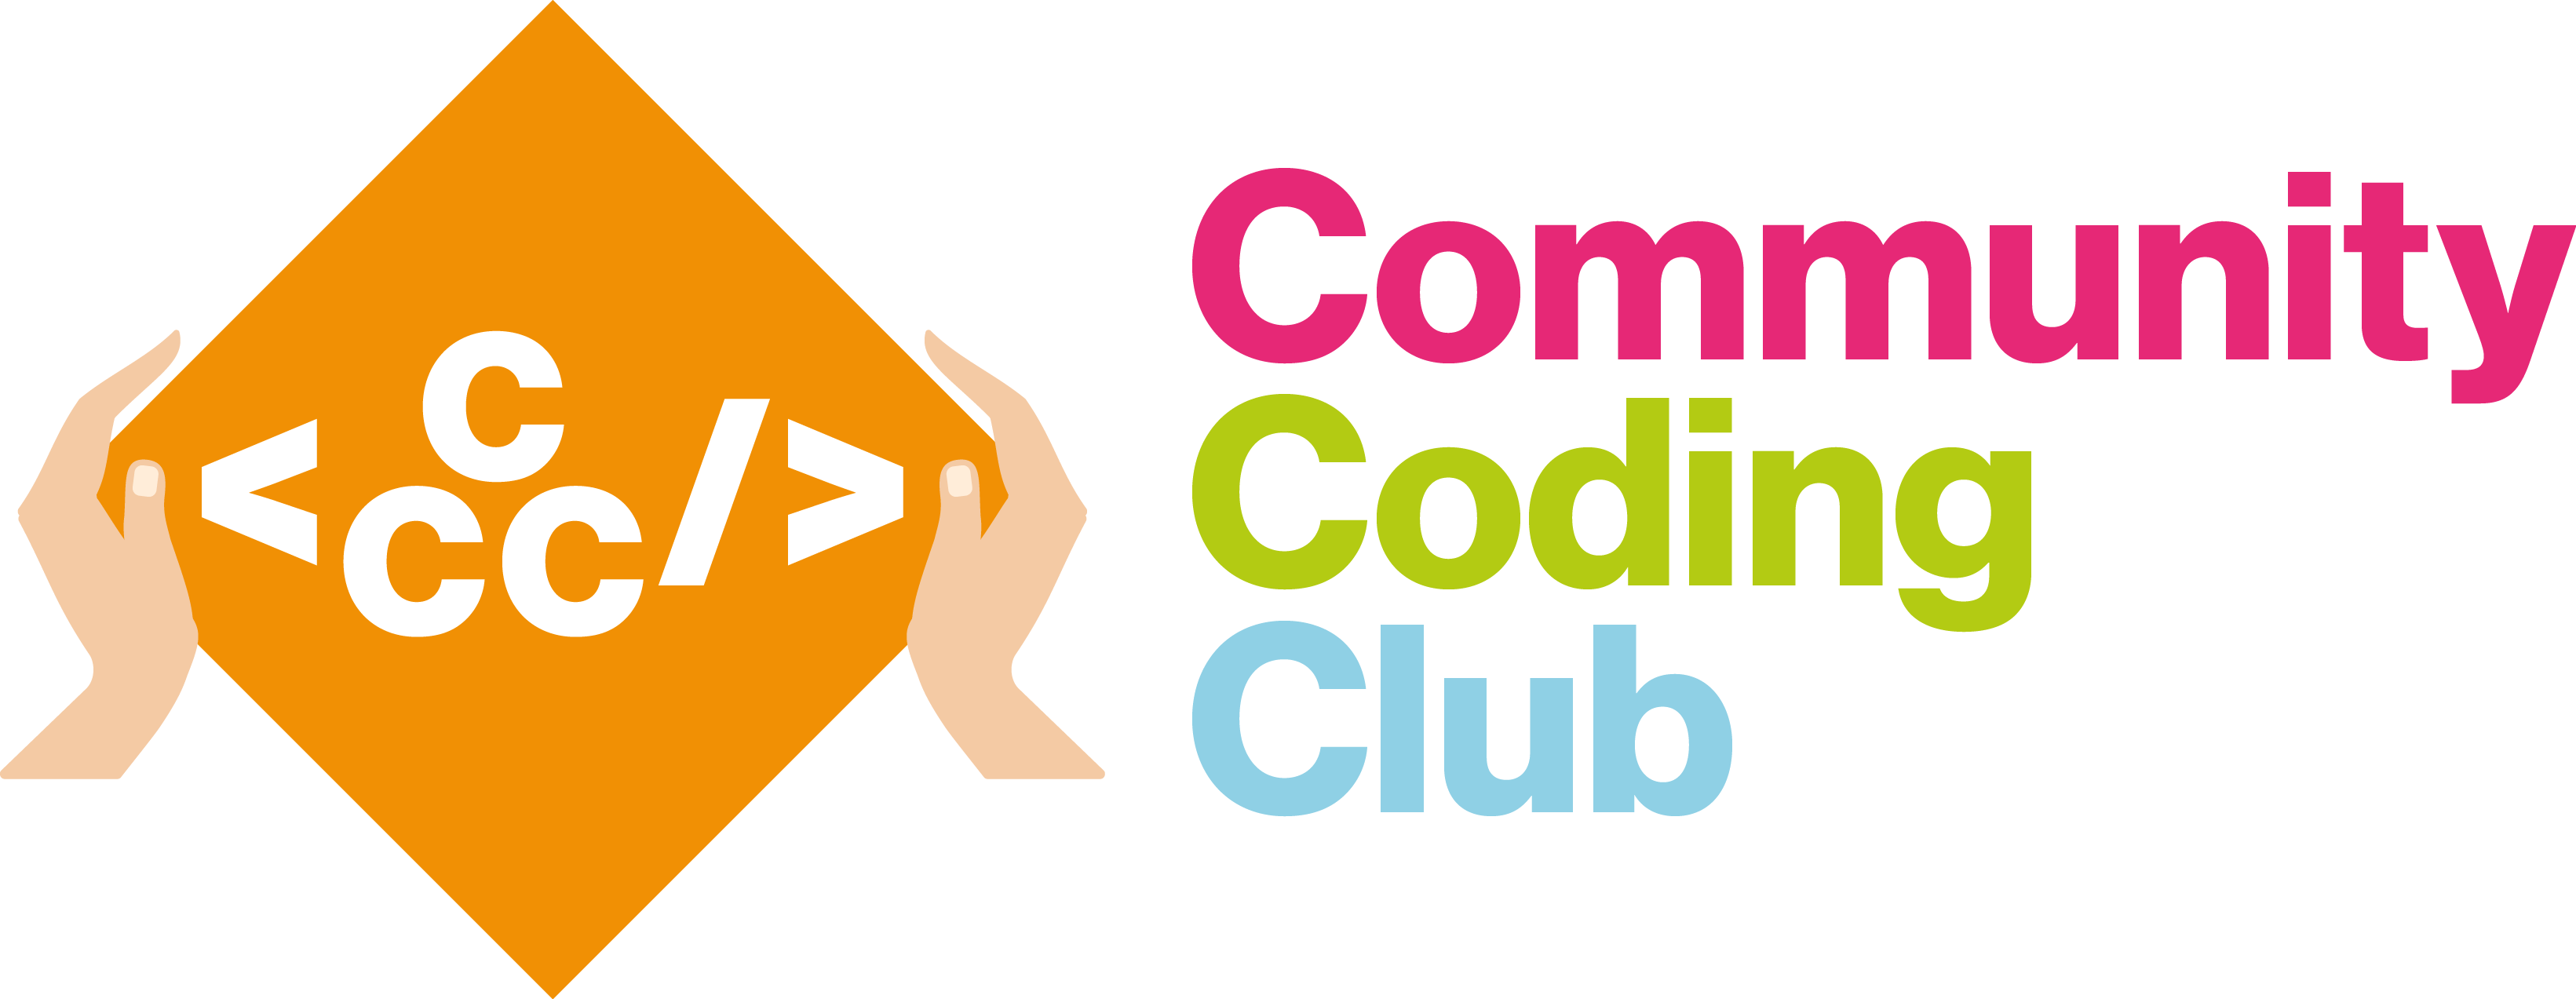 Community Coding Club